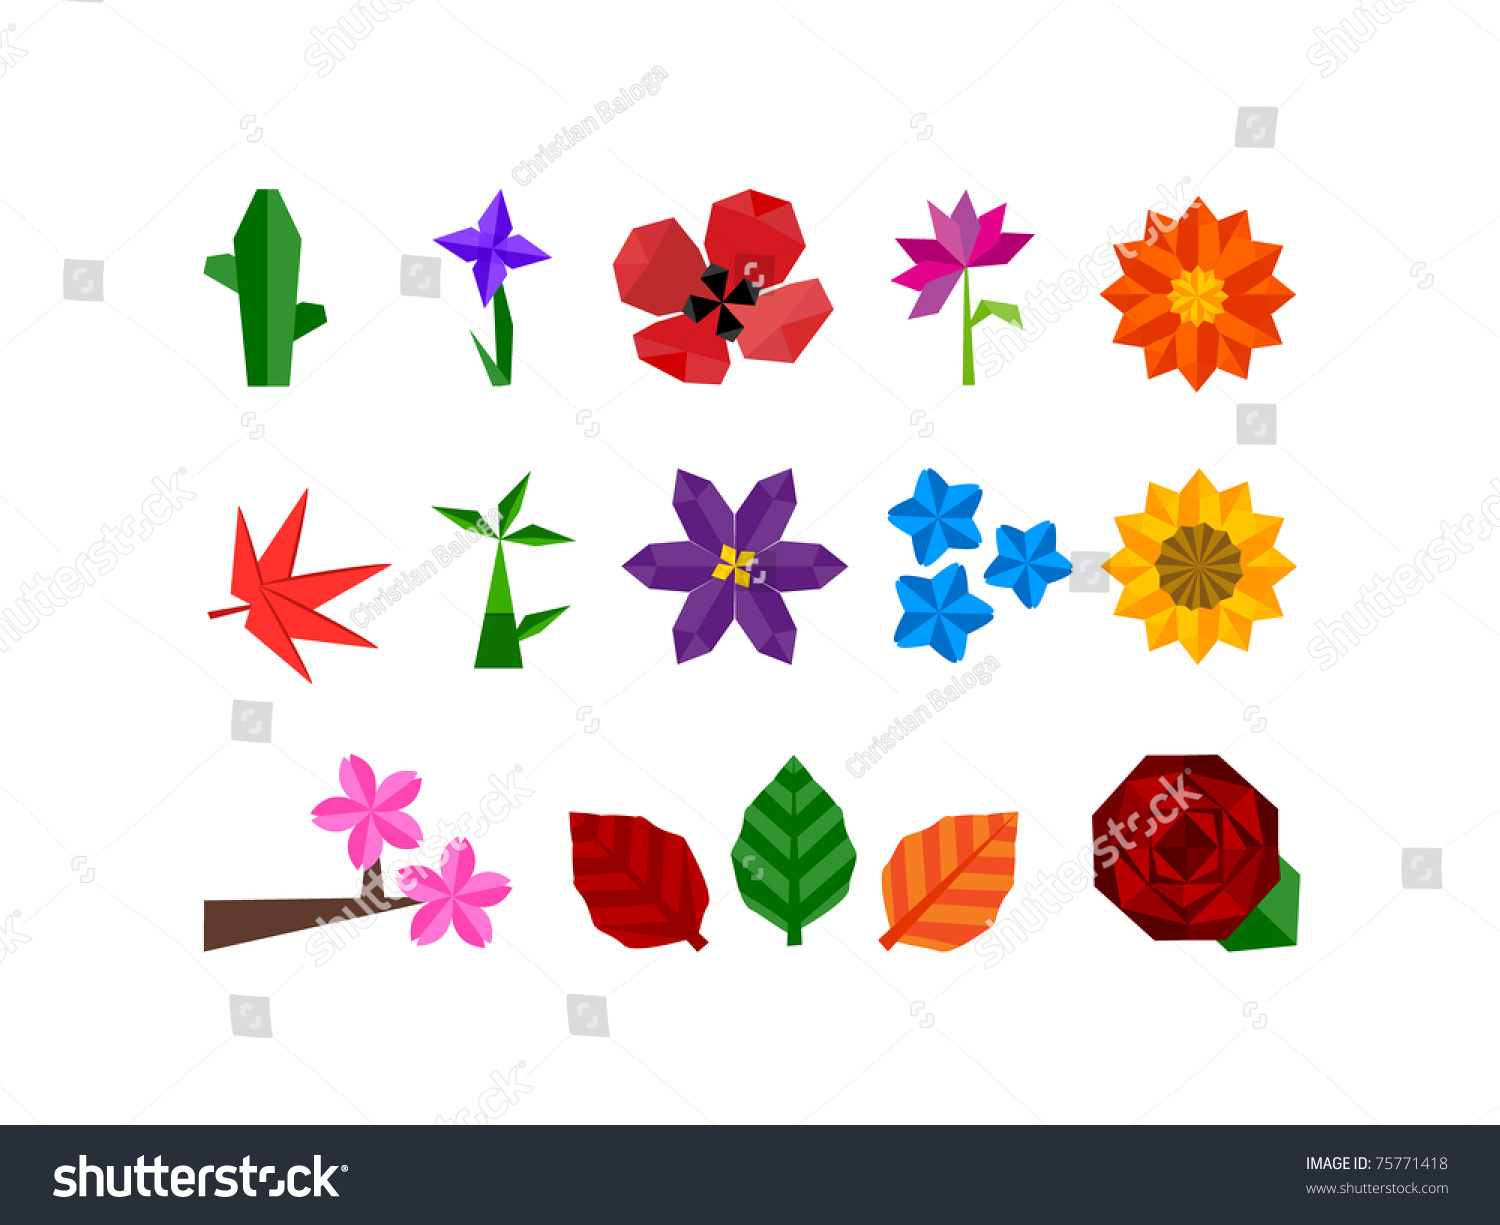 Abstract Flower Icons Stock Vector: Abstract Icon Set Of Plants And Flower Icons For All